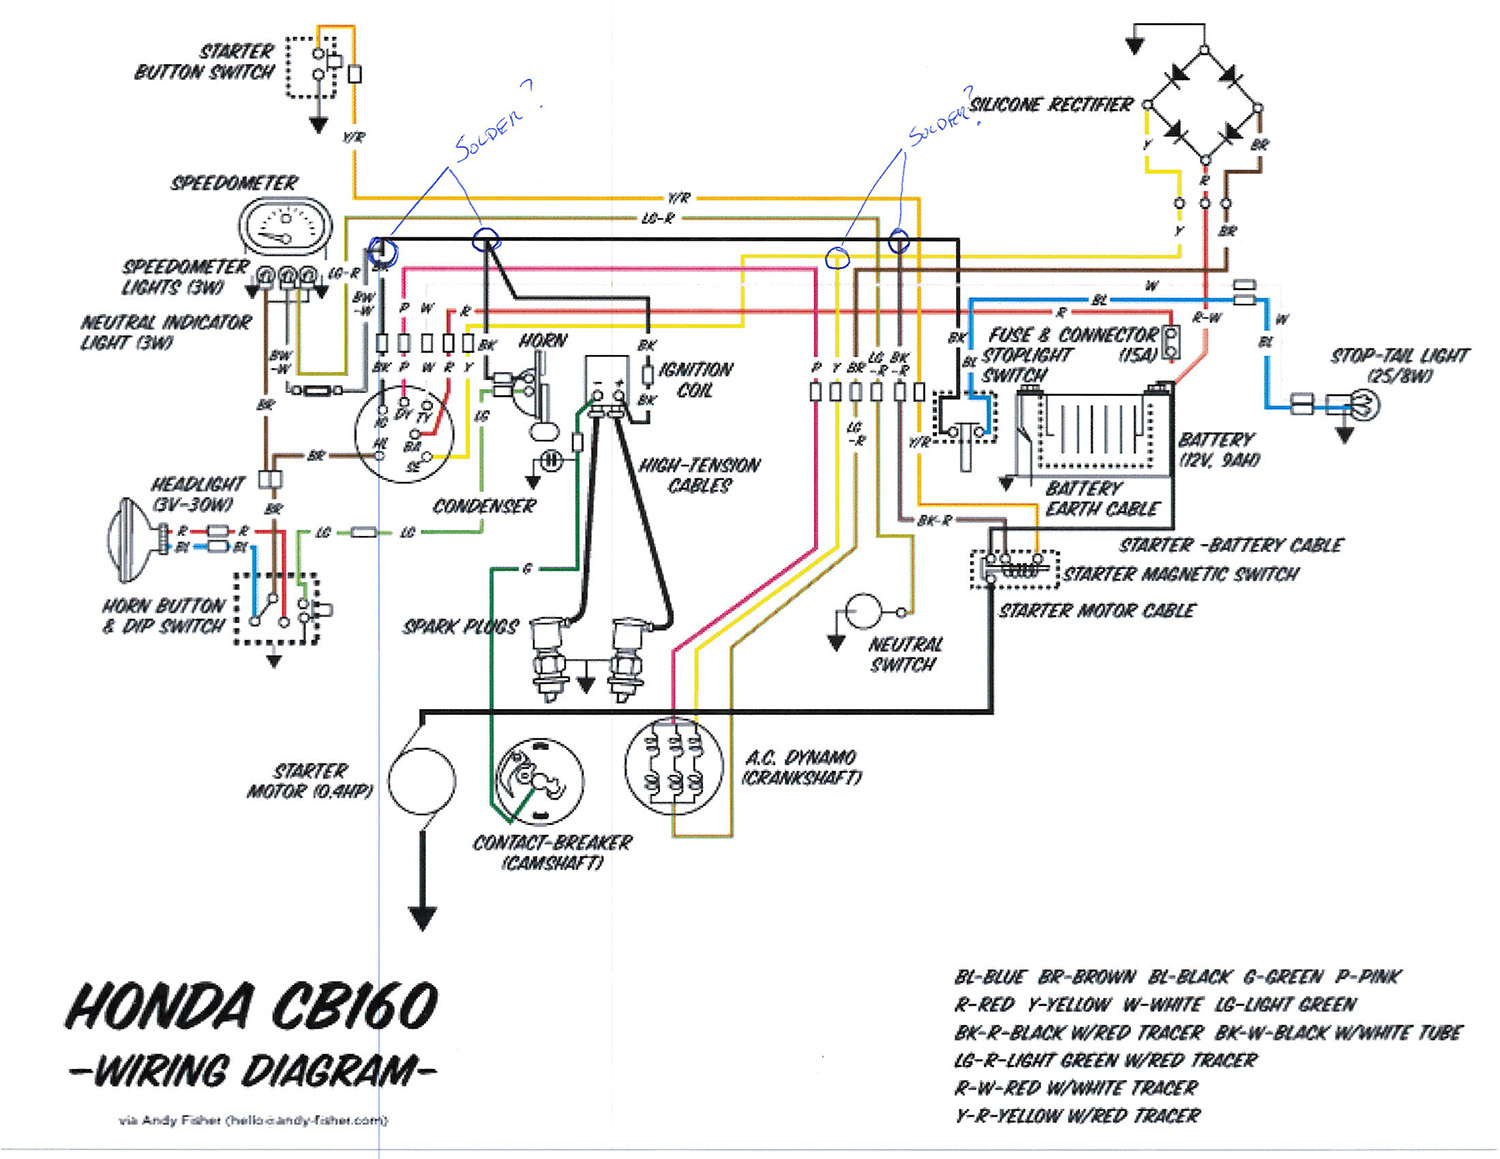 15645D6 Ford Thnk Neighbor 2002 Wiring Diagram | Wiring LibraryWiring Diagram Schematics